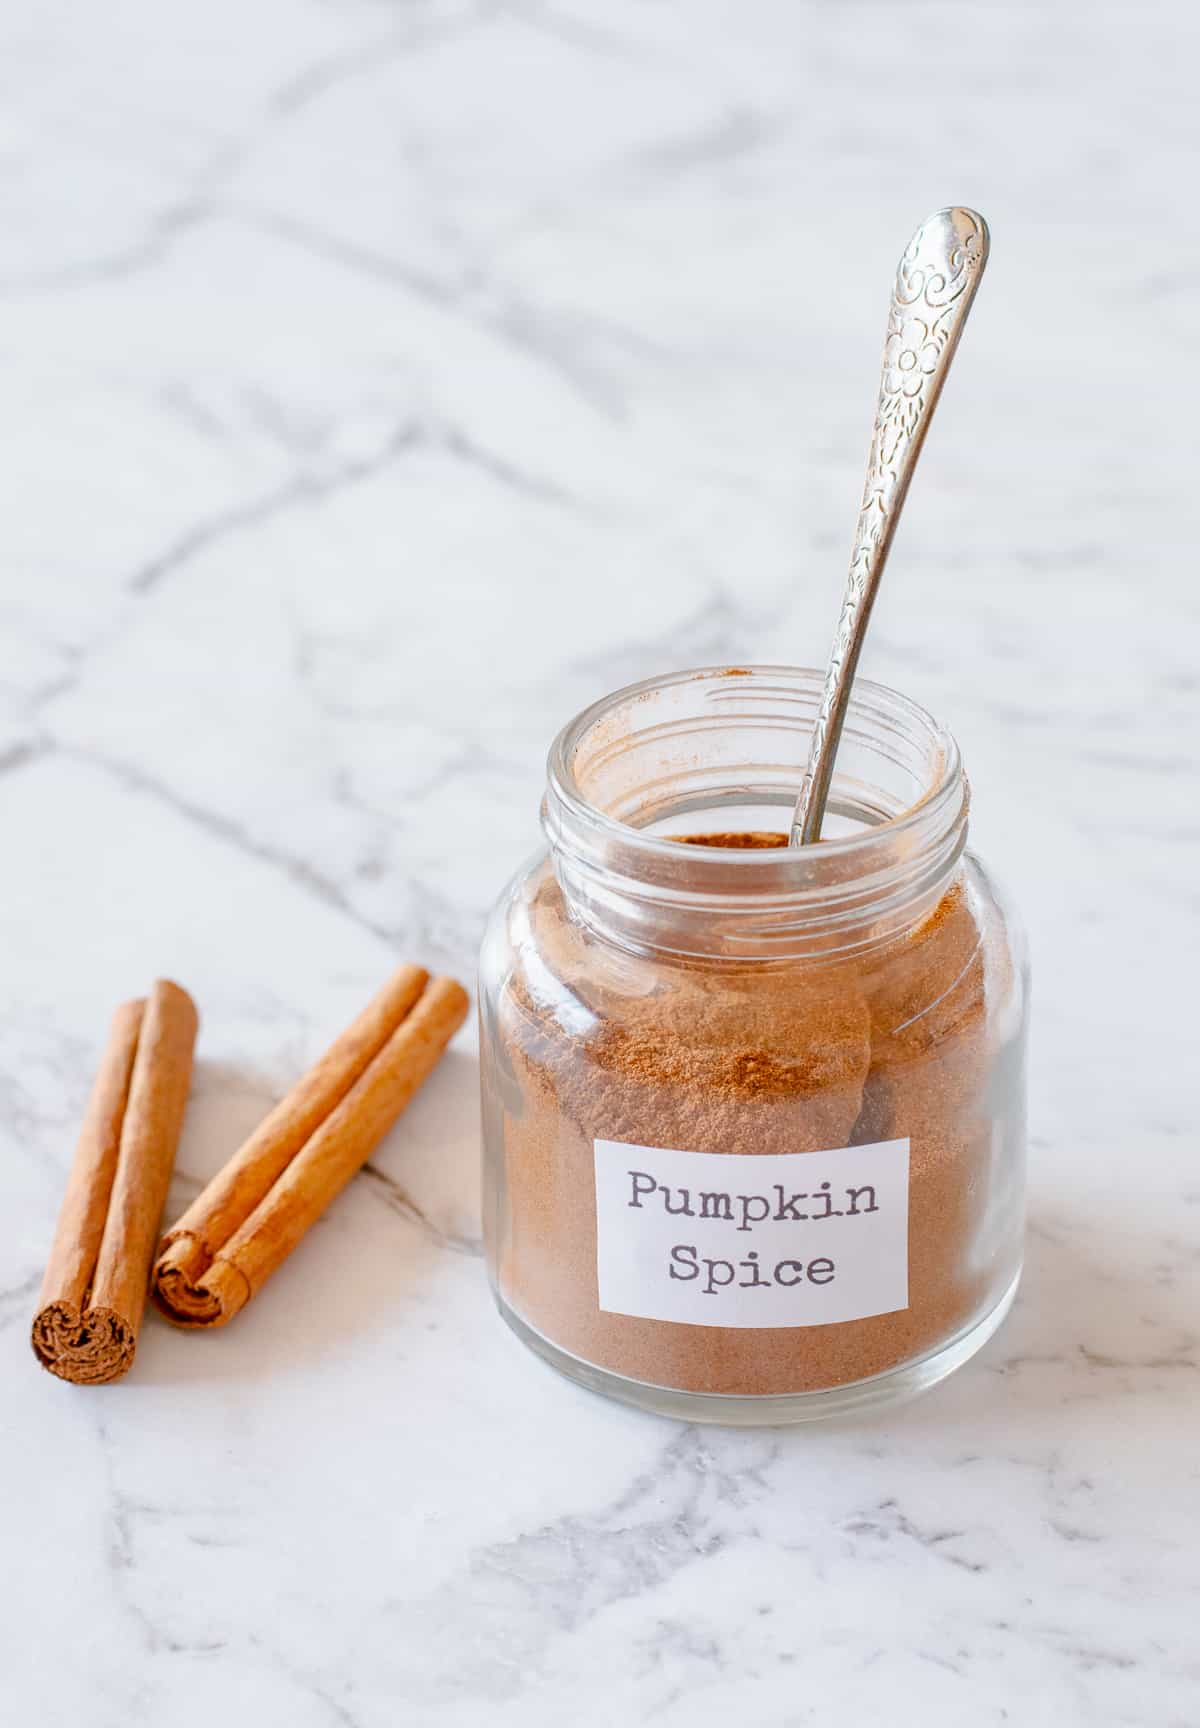 A jar of homemade pumpkin spice